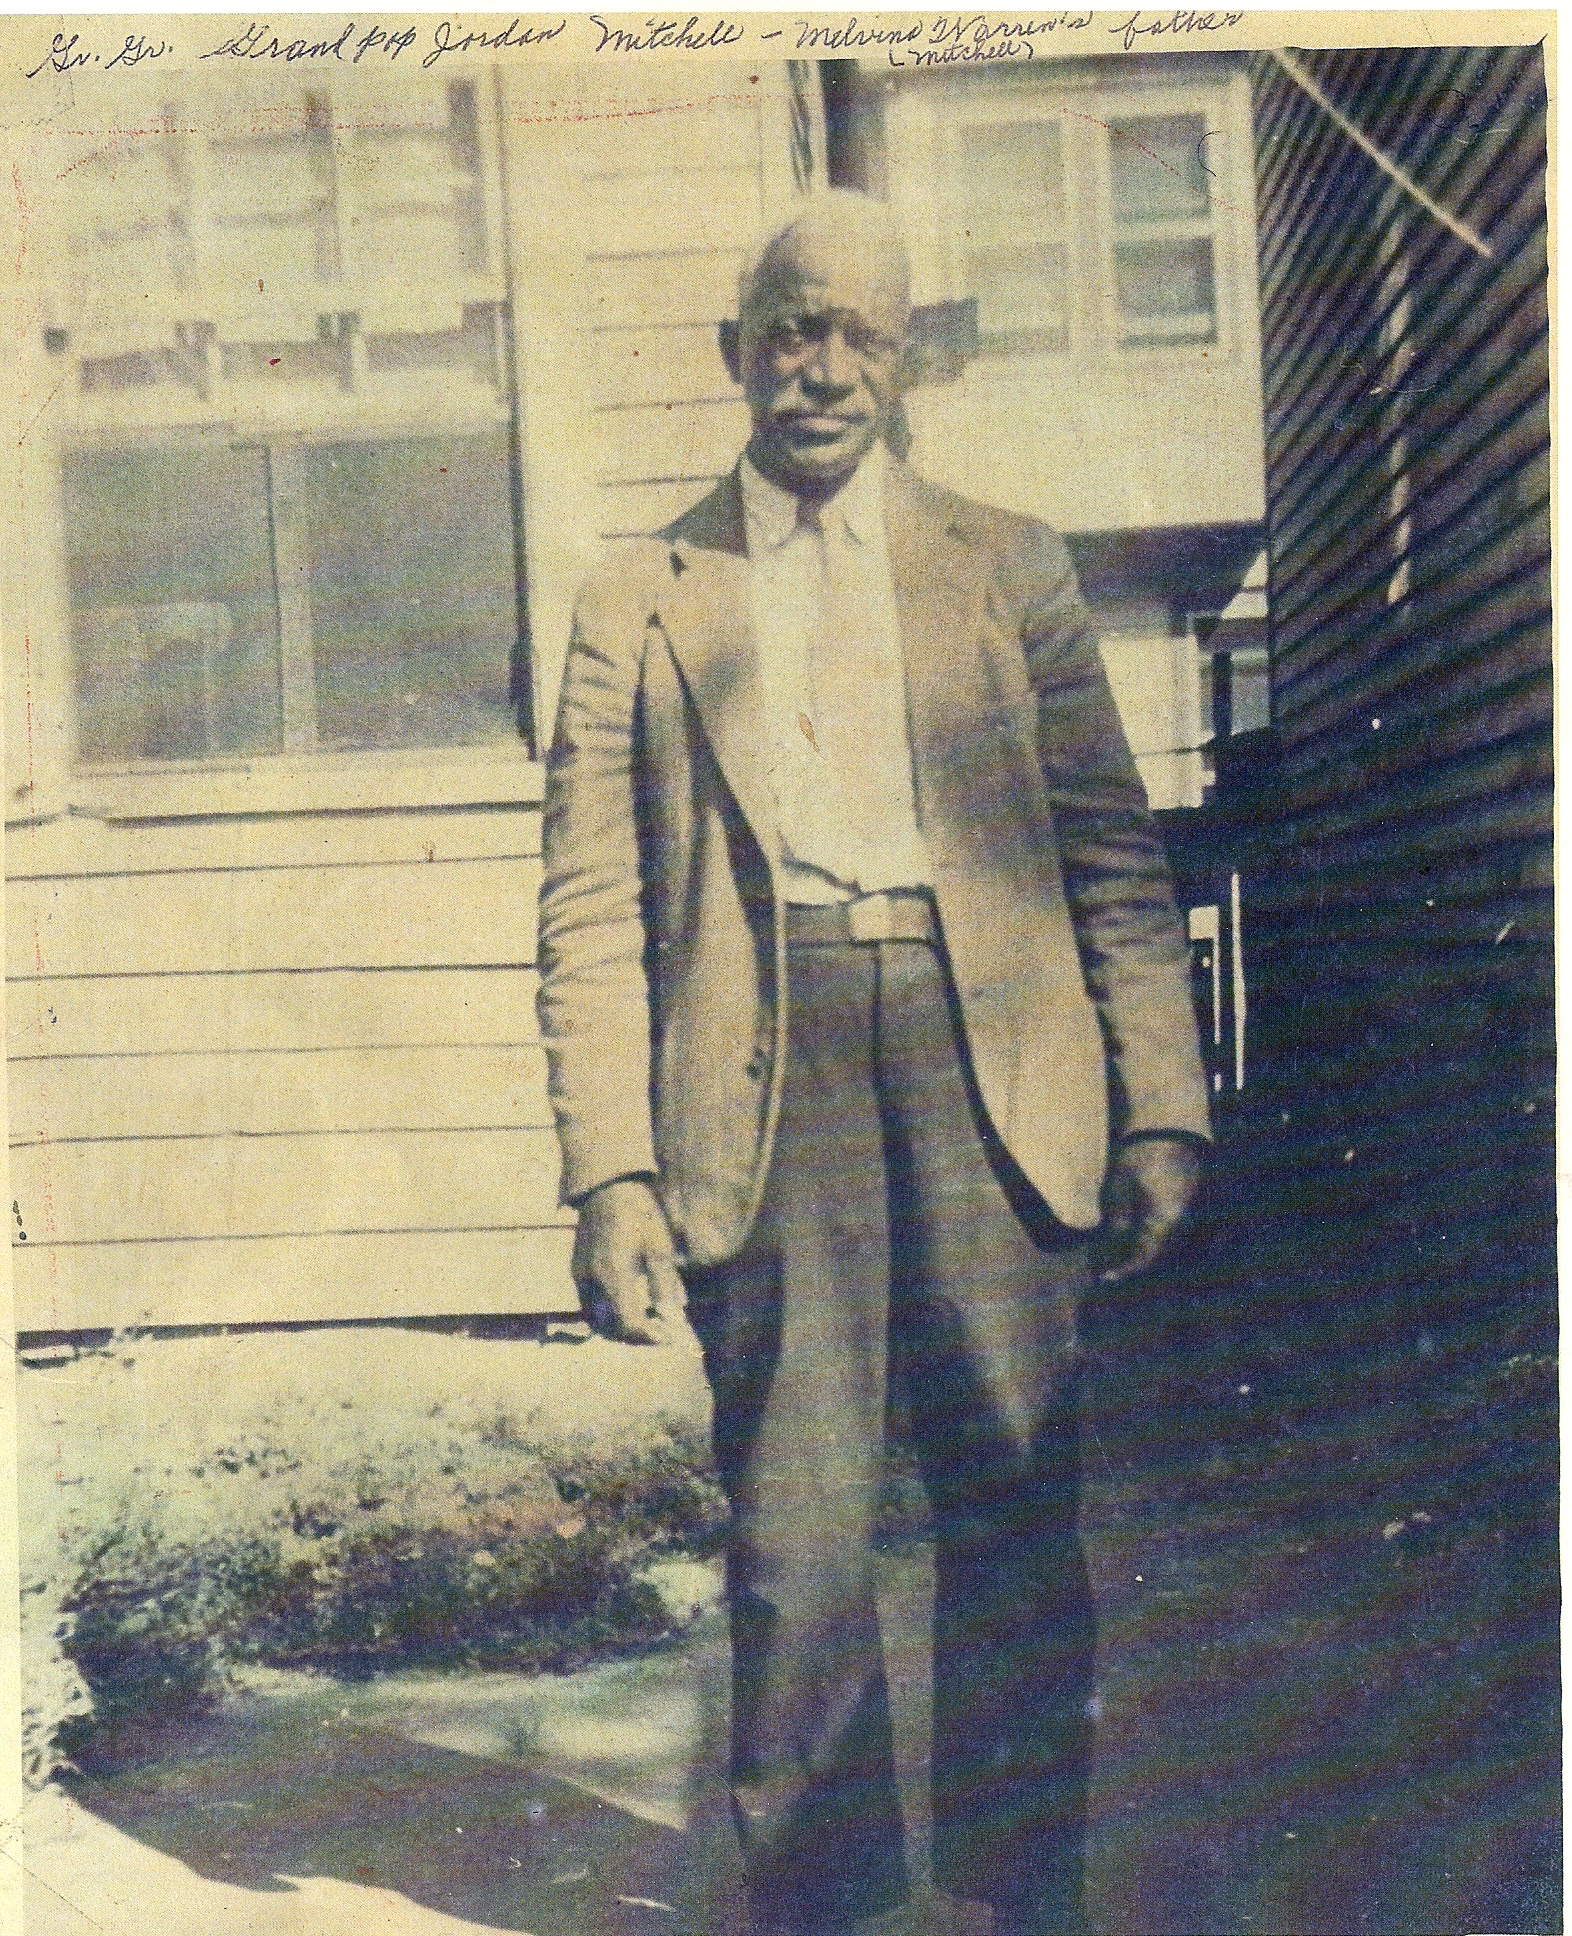 Jordan Mitchell, Kim Pearson's great-grandfather